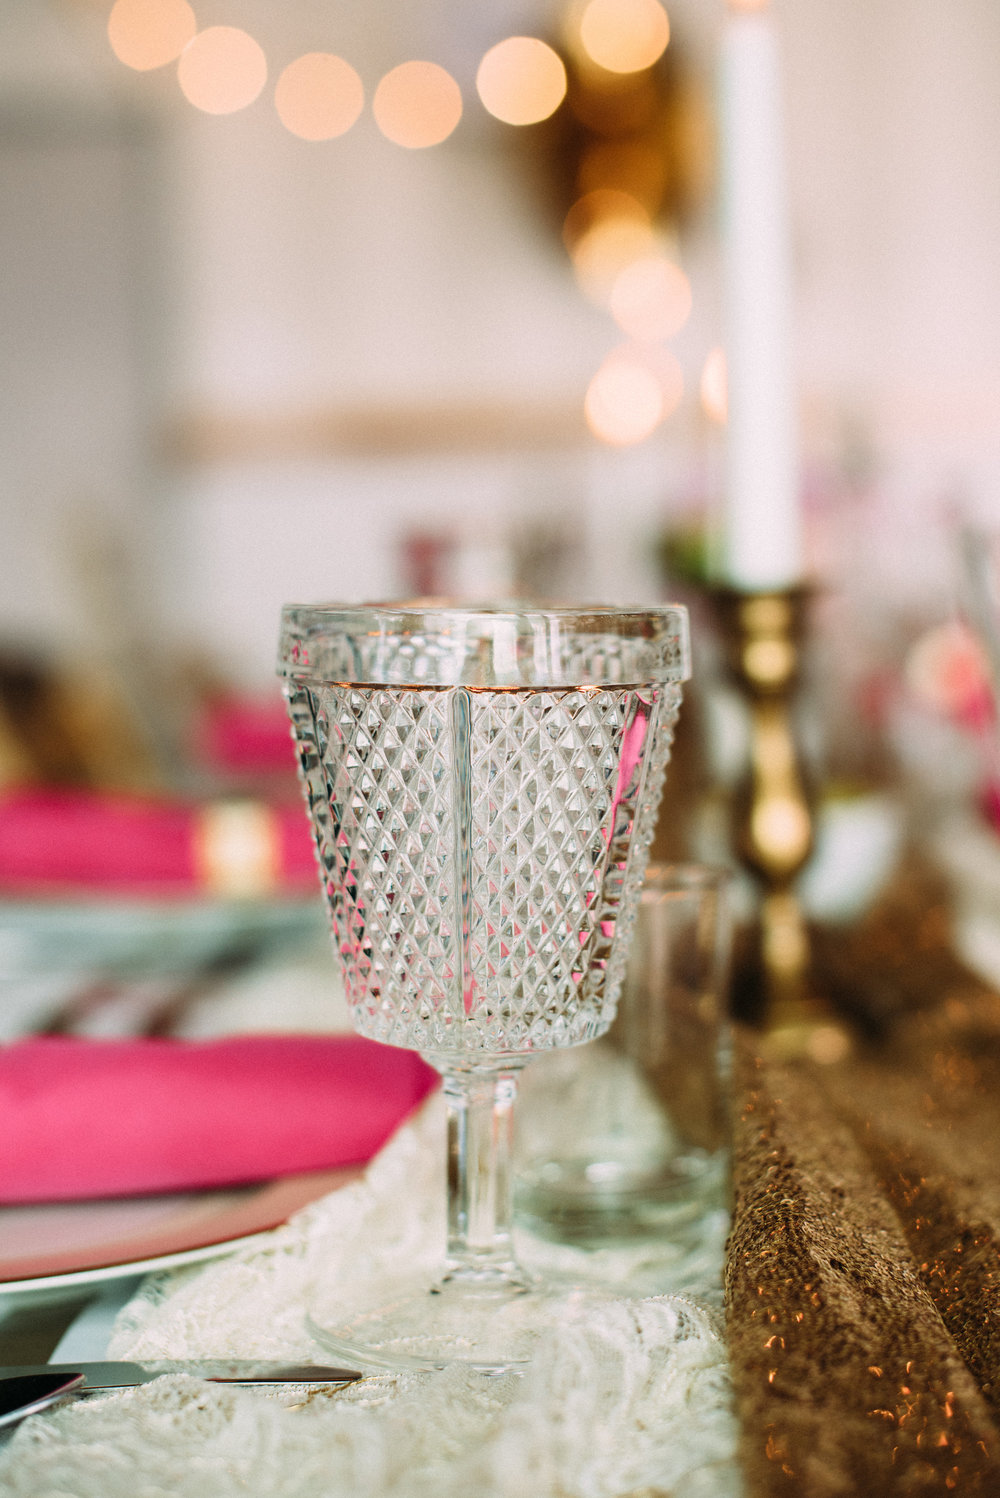 Collect mix matched goblets to give even more depth to the design